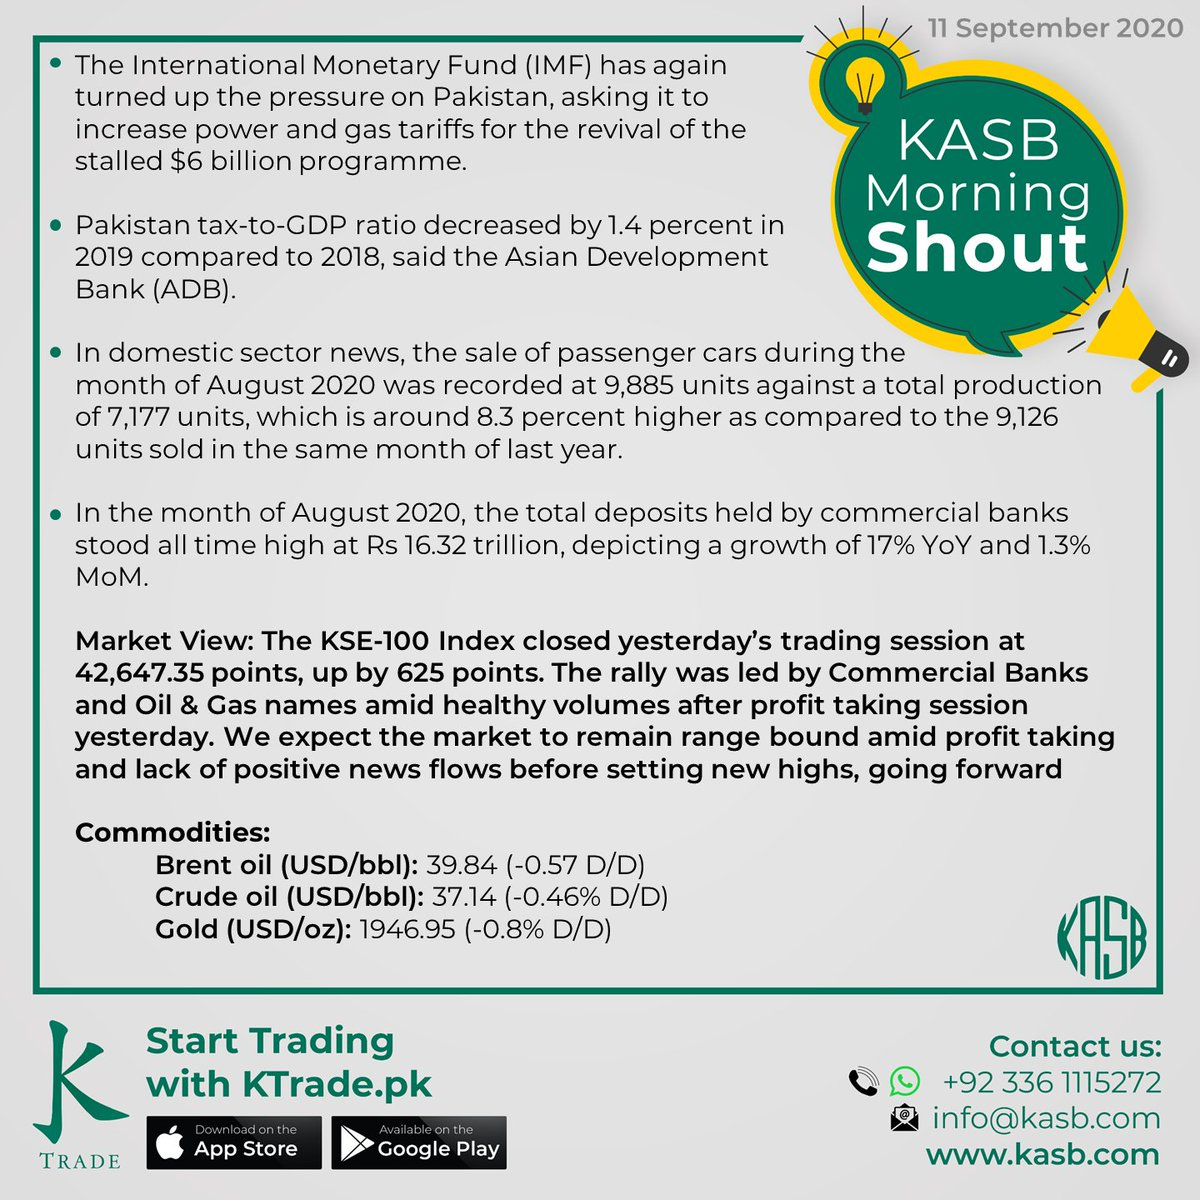 KASB Morning Shout: Our views on today's news #kasb #smartinvesting #psx #stockmarket #KTrade #onlinetrading #pakistaneconomy #imrankhan #sbp #inflation #kse100 #brokeragehouse #psxstocks #marketupdate #emergingmarkets #frontiermarkets #news #morning #today #views https://t.co/C5Y31jpWiP